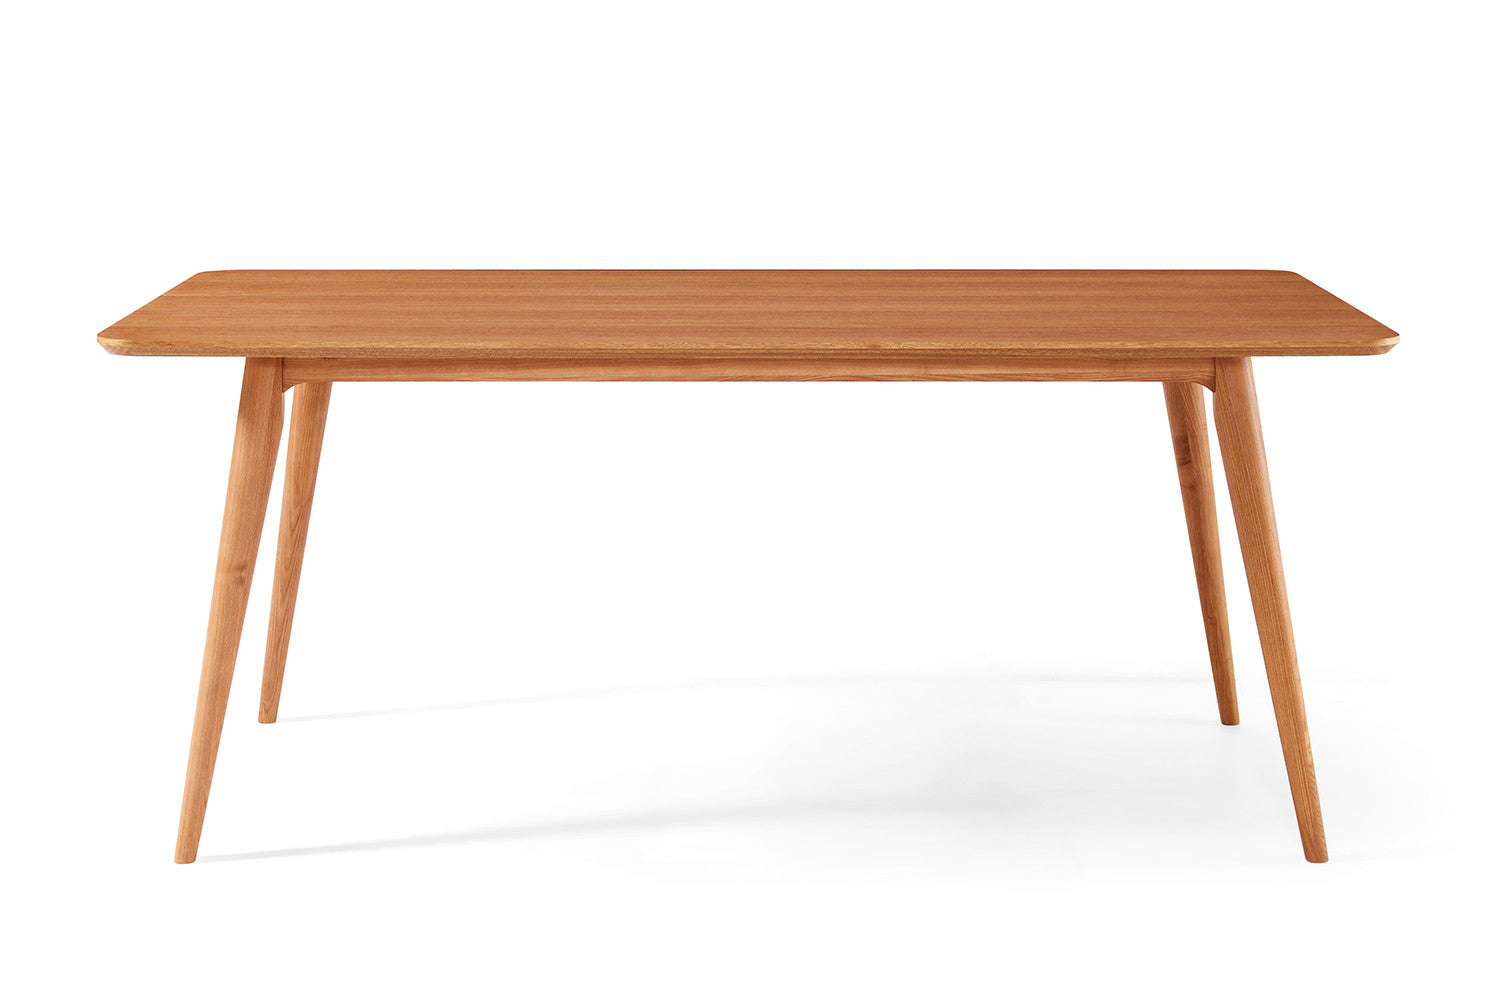 Table de salle manger design en bois julia dewarens for Table salle a manger design paris